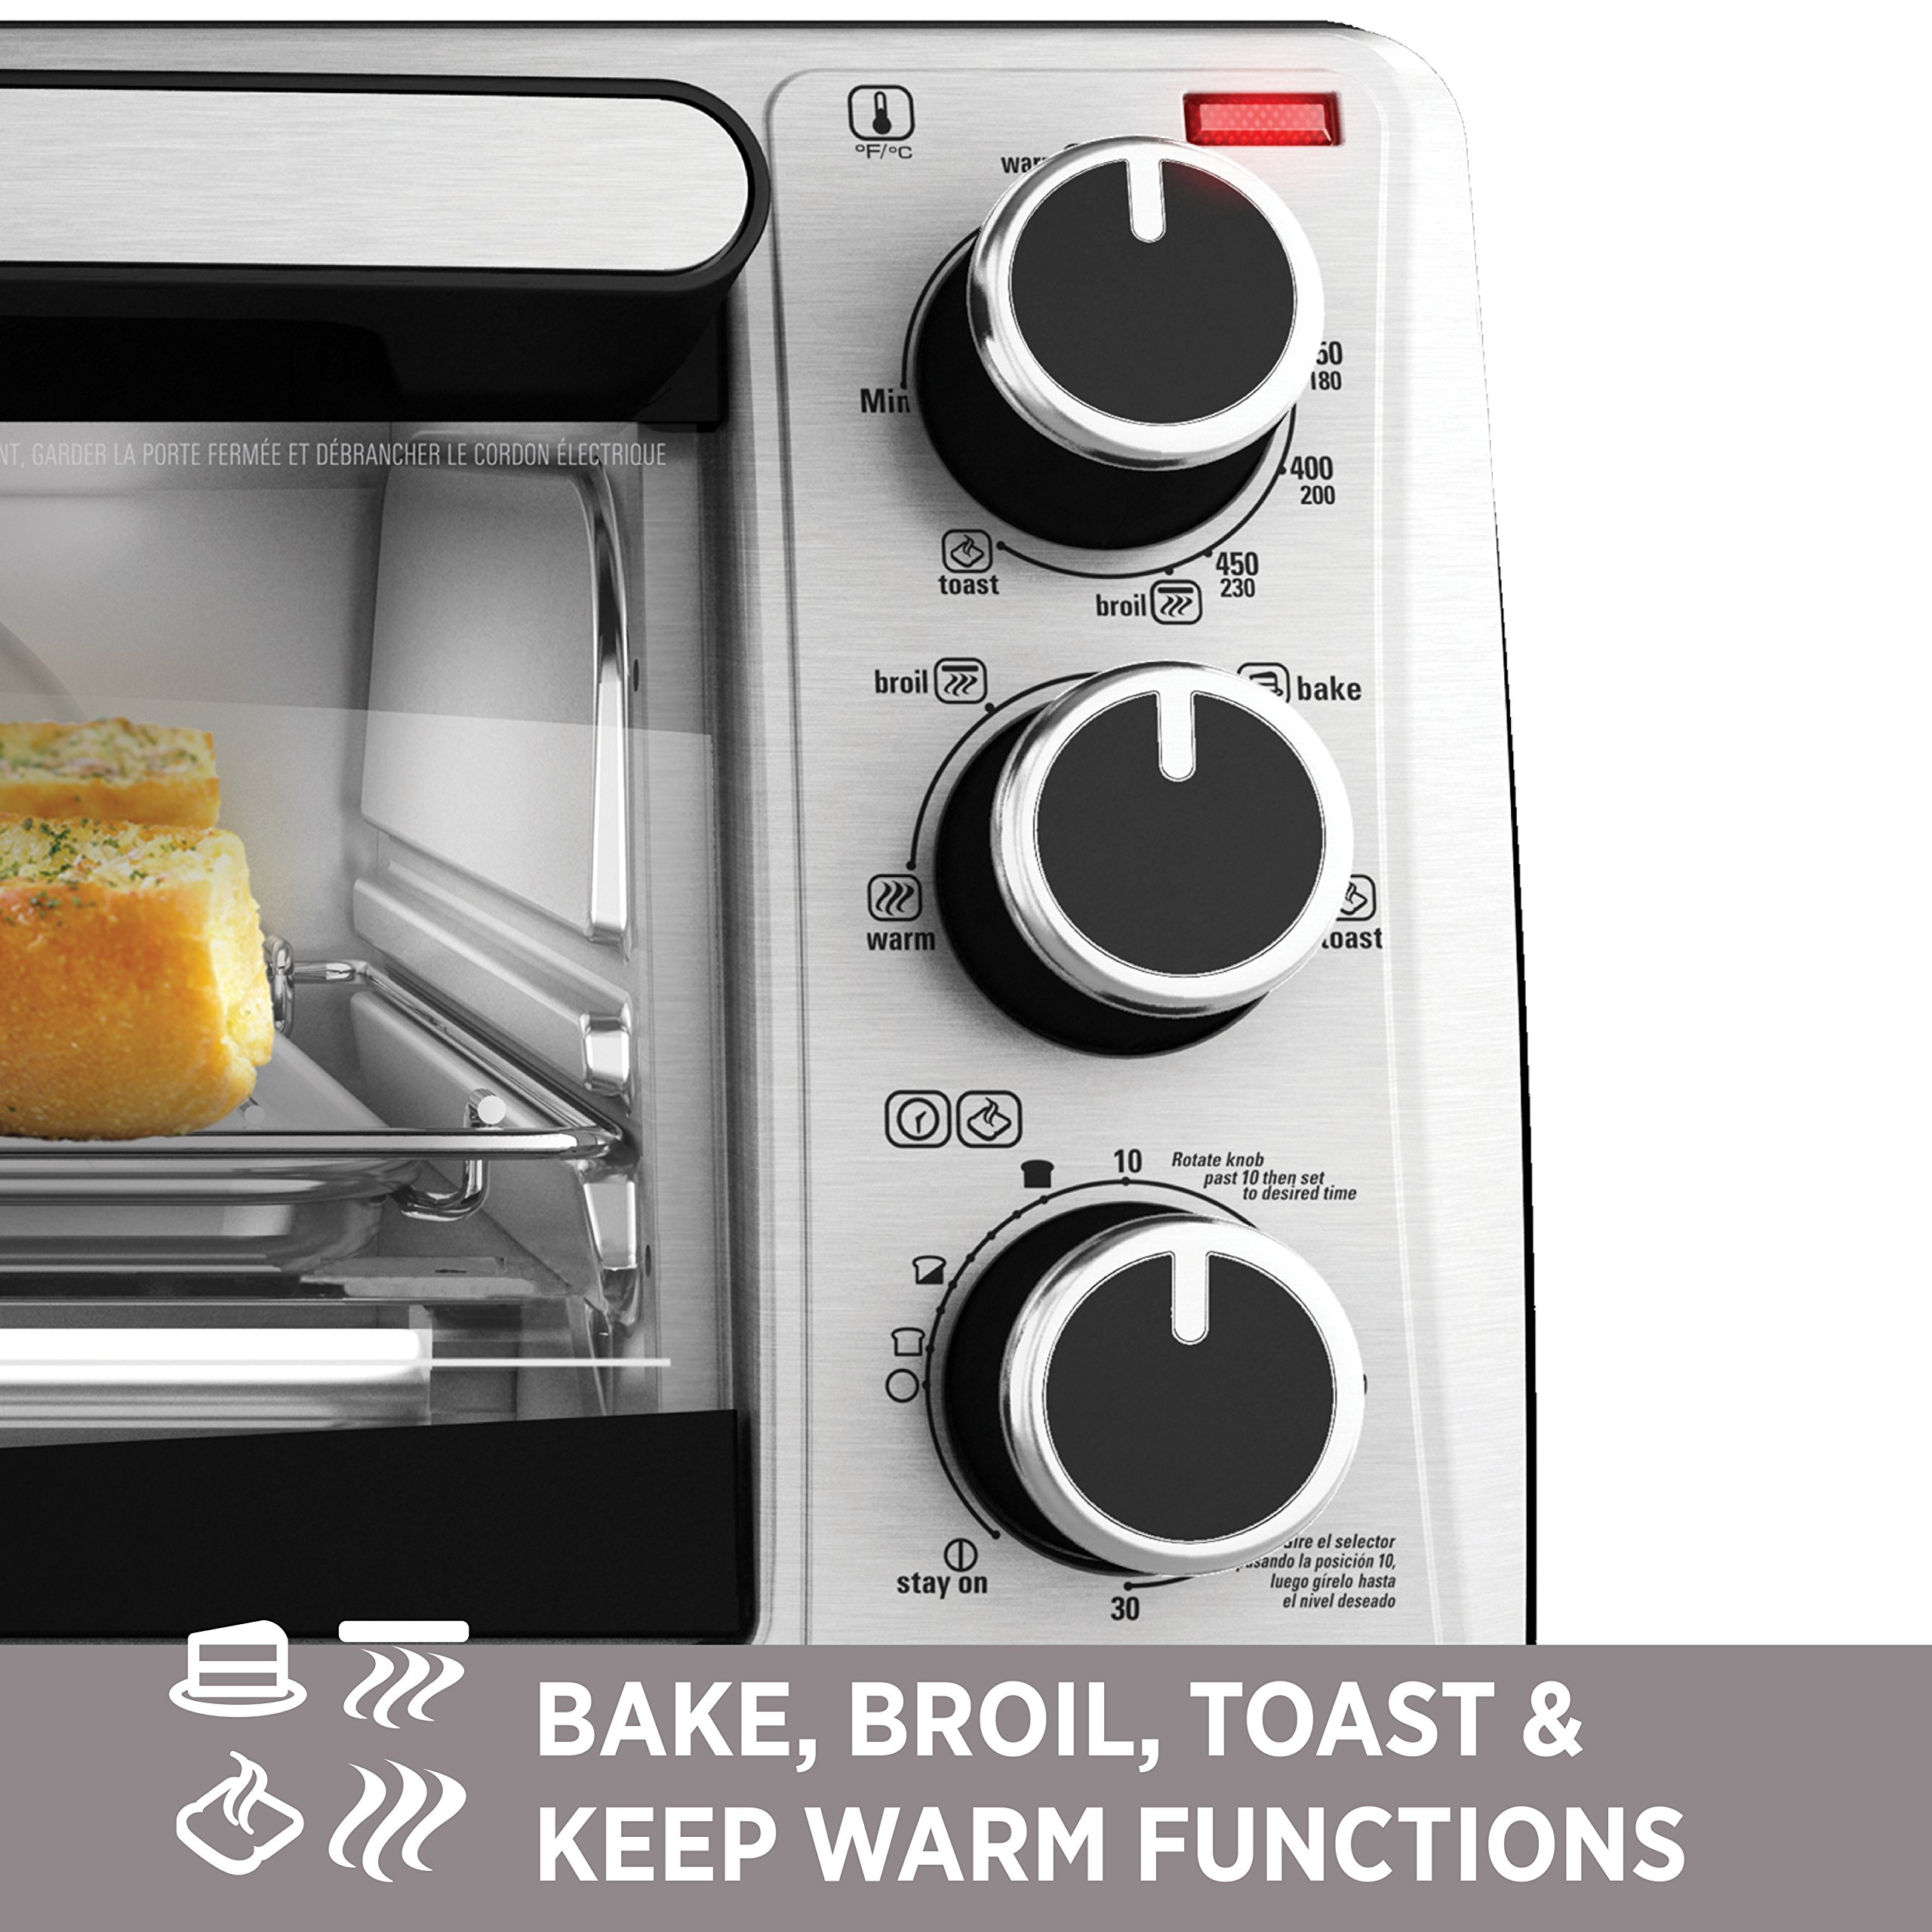 BLACK+DECKER 4-Slice Toaster Oven, Stainless Steel, TO1303SB by BLACK+DECKER (Image #7)